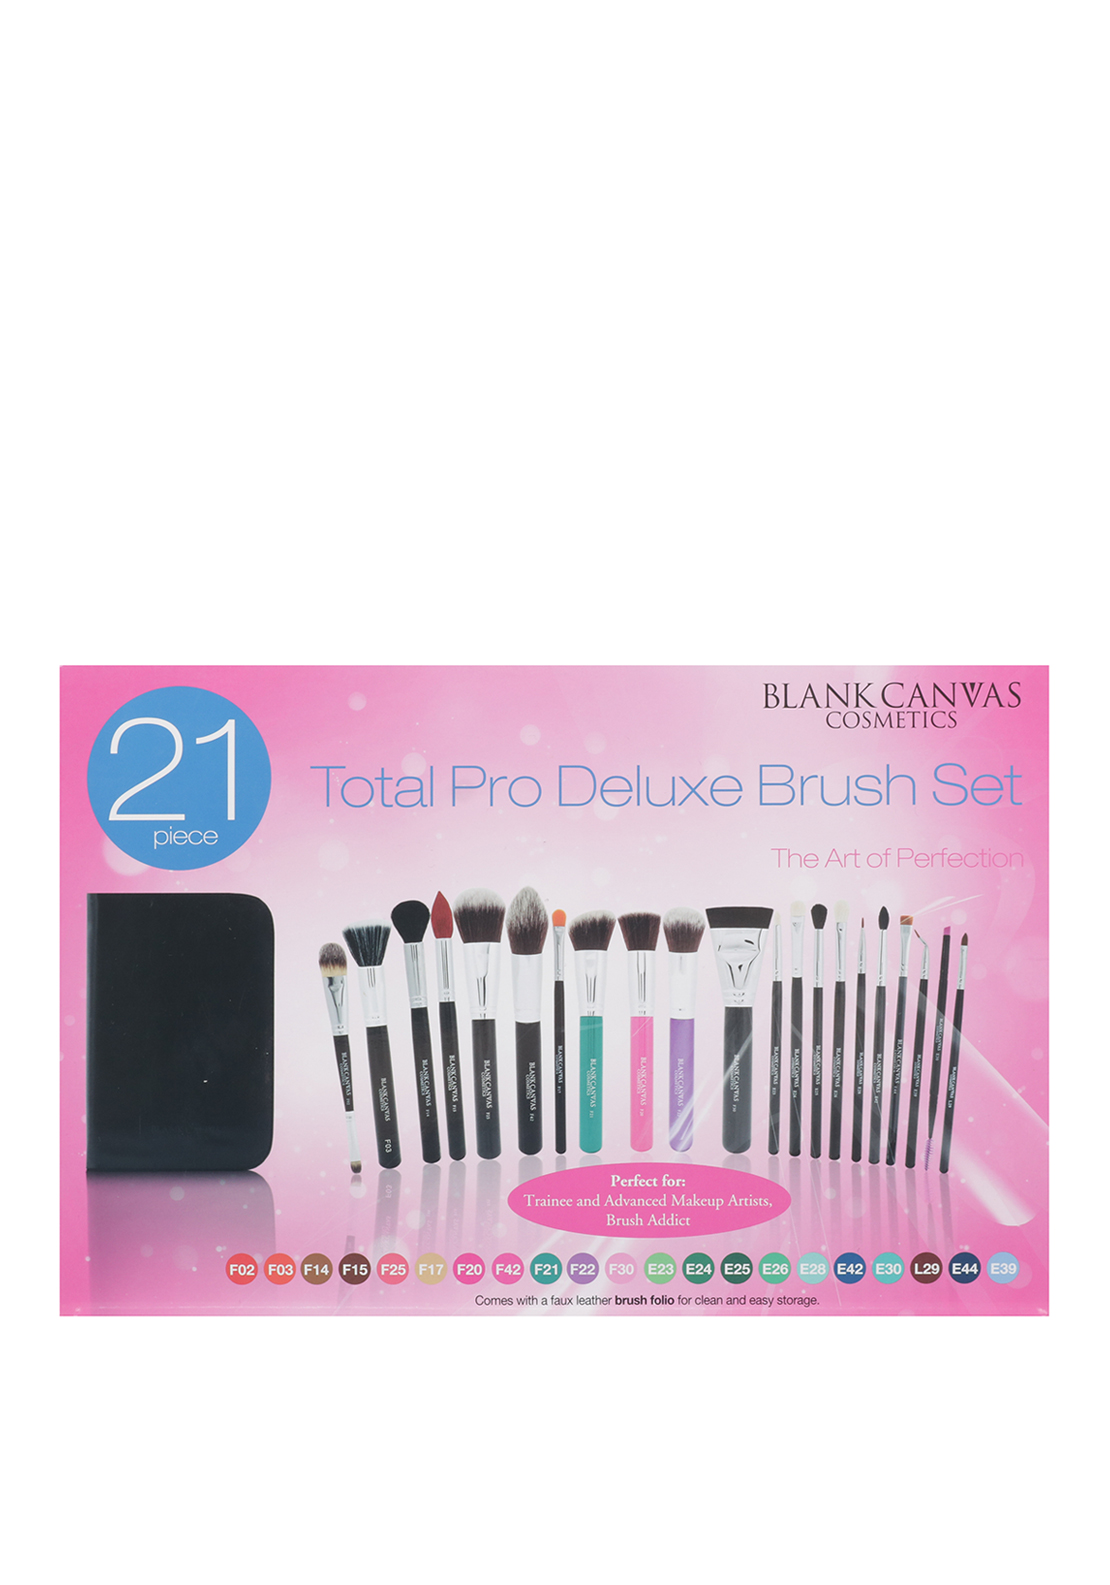 Blank Canvas Cosmetics 21 Piece Total Pro Deluxe Brush Set